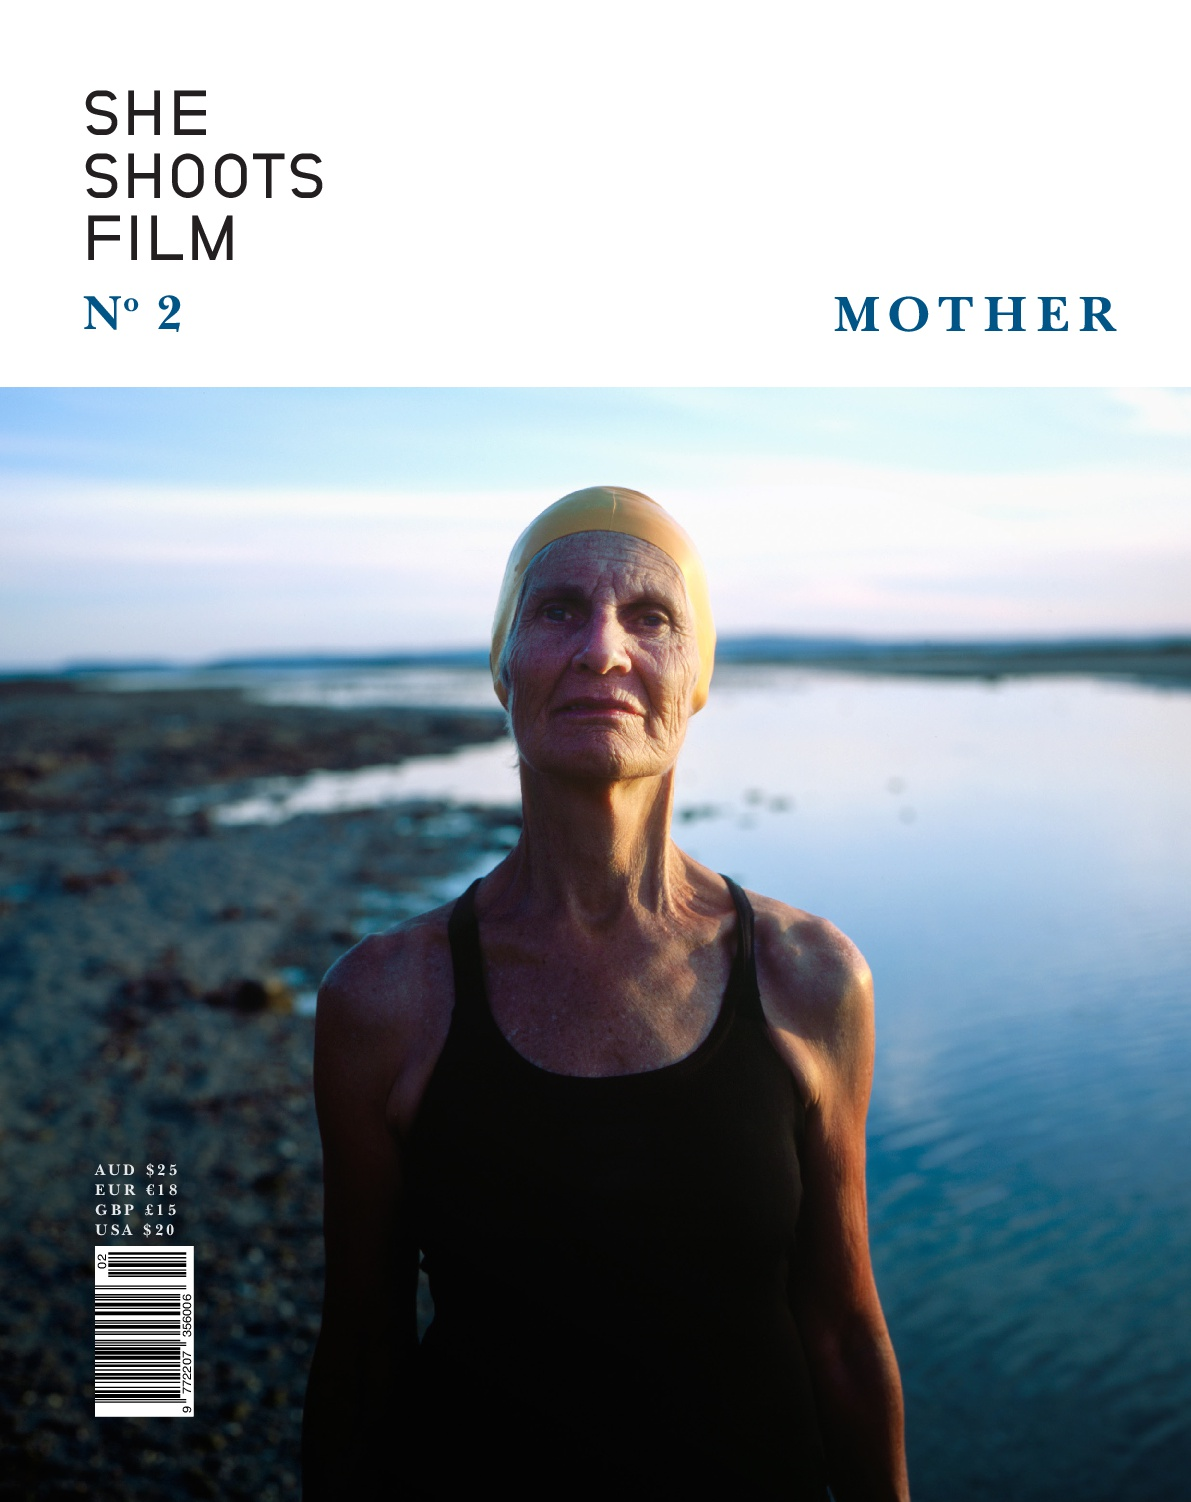 SHE_SHOOTS_FILM_ISSUE_2_SPREADS-(1)-001.jpg